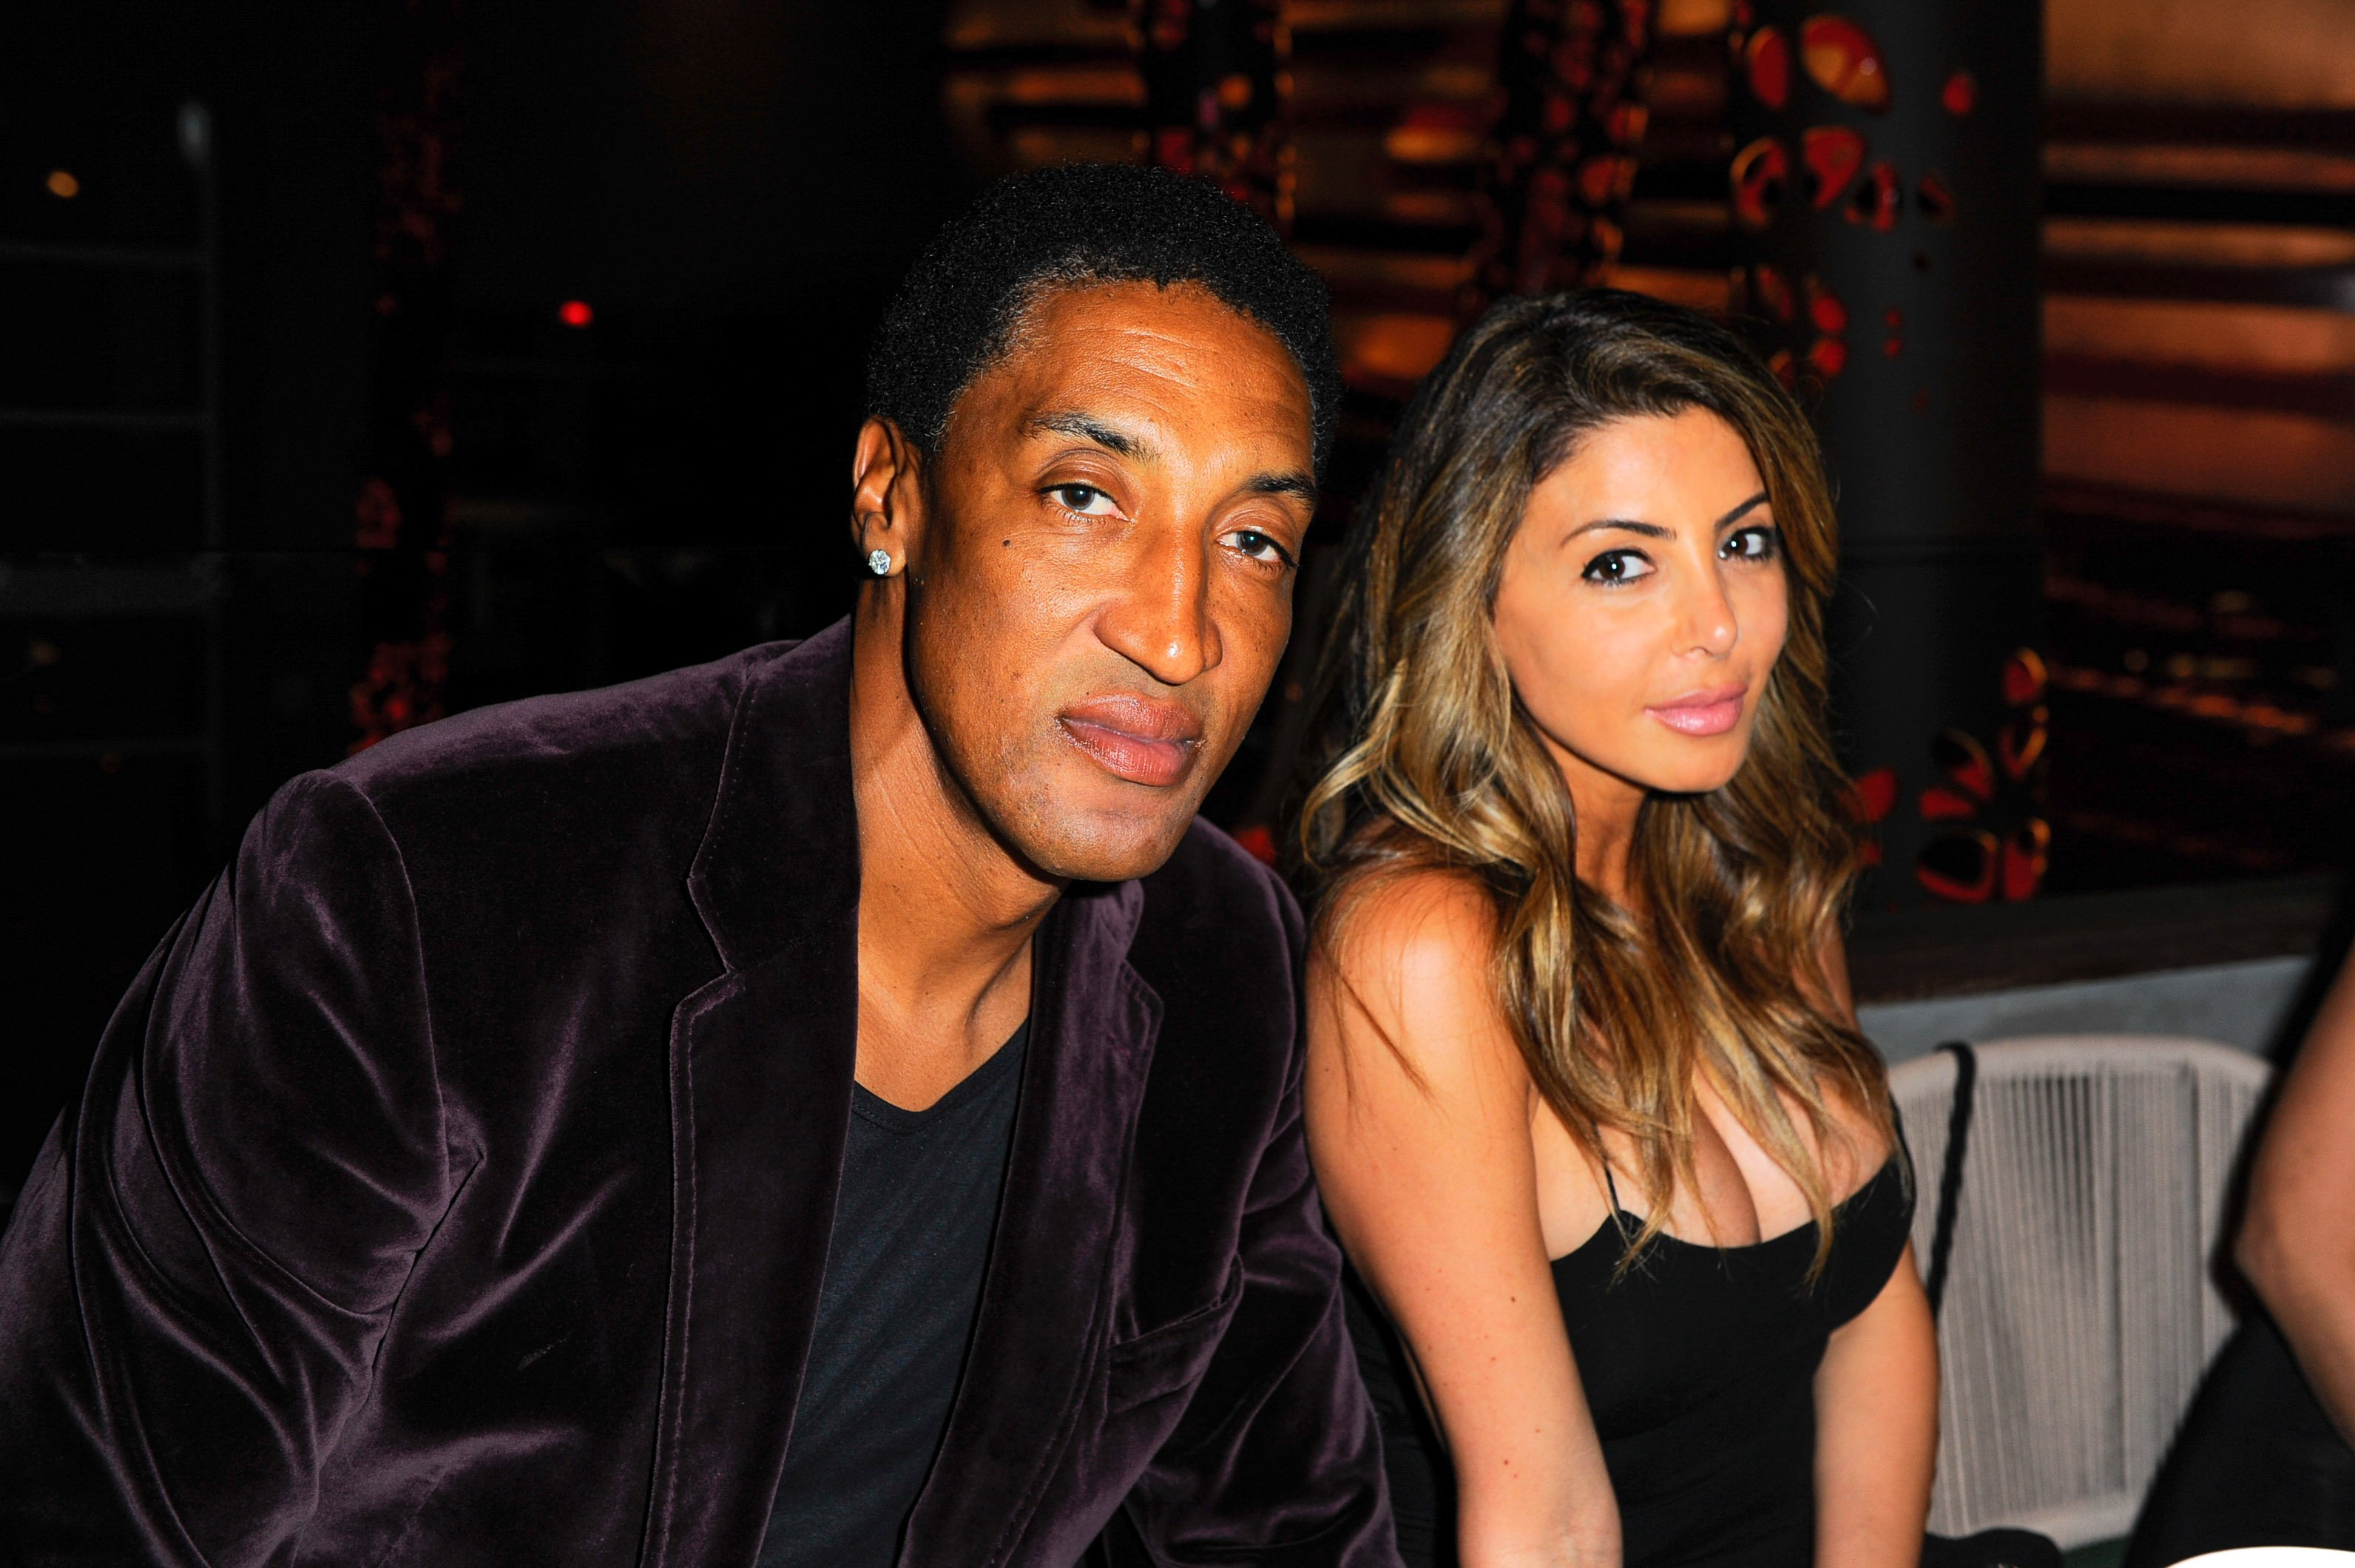 Scottie Pippen and Larsa Pippen attend the Avion Reserva 44 Celebrates Kygo's Haute Living Cover at Komodo on March 16, 2016 in Miami, Florida | Photo: GettyImages